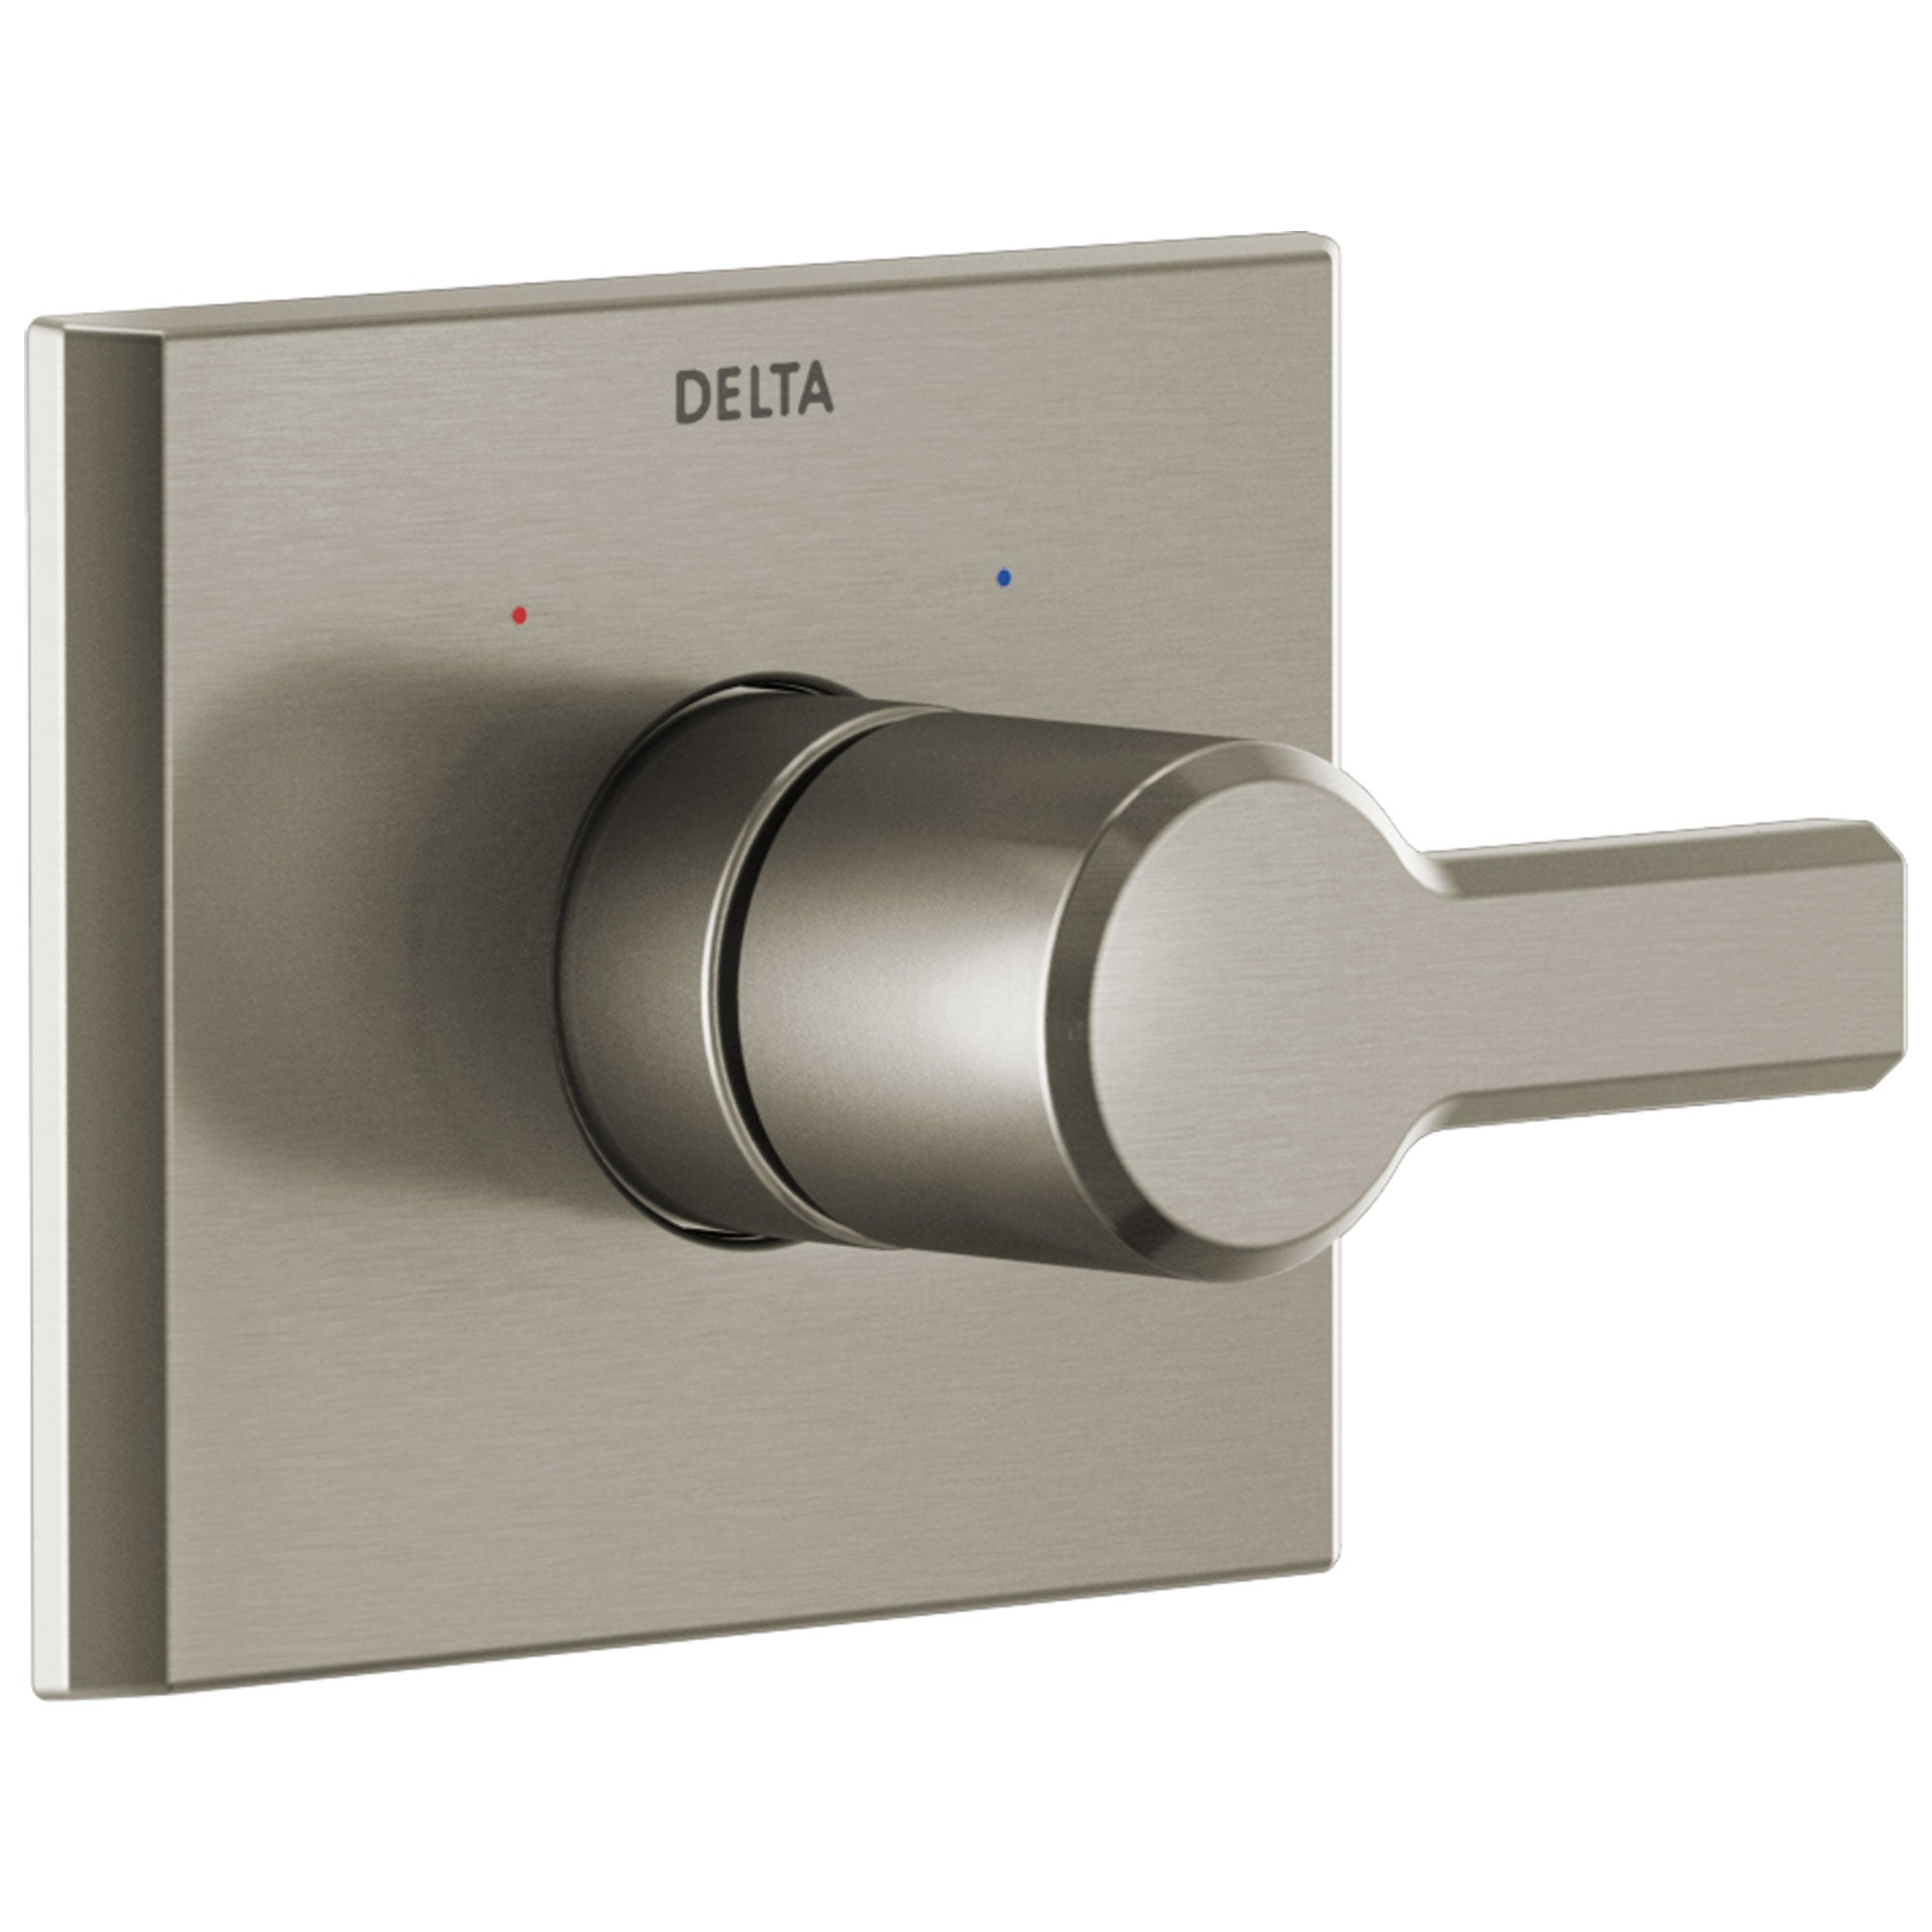 Delta Pivotal Stainless Steel Finish Monitor 14 Series Single Handle Shower Faucet Control Only Includes Cartridge and Valve without Stops D3525V